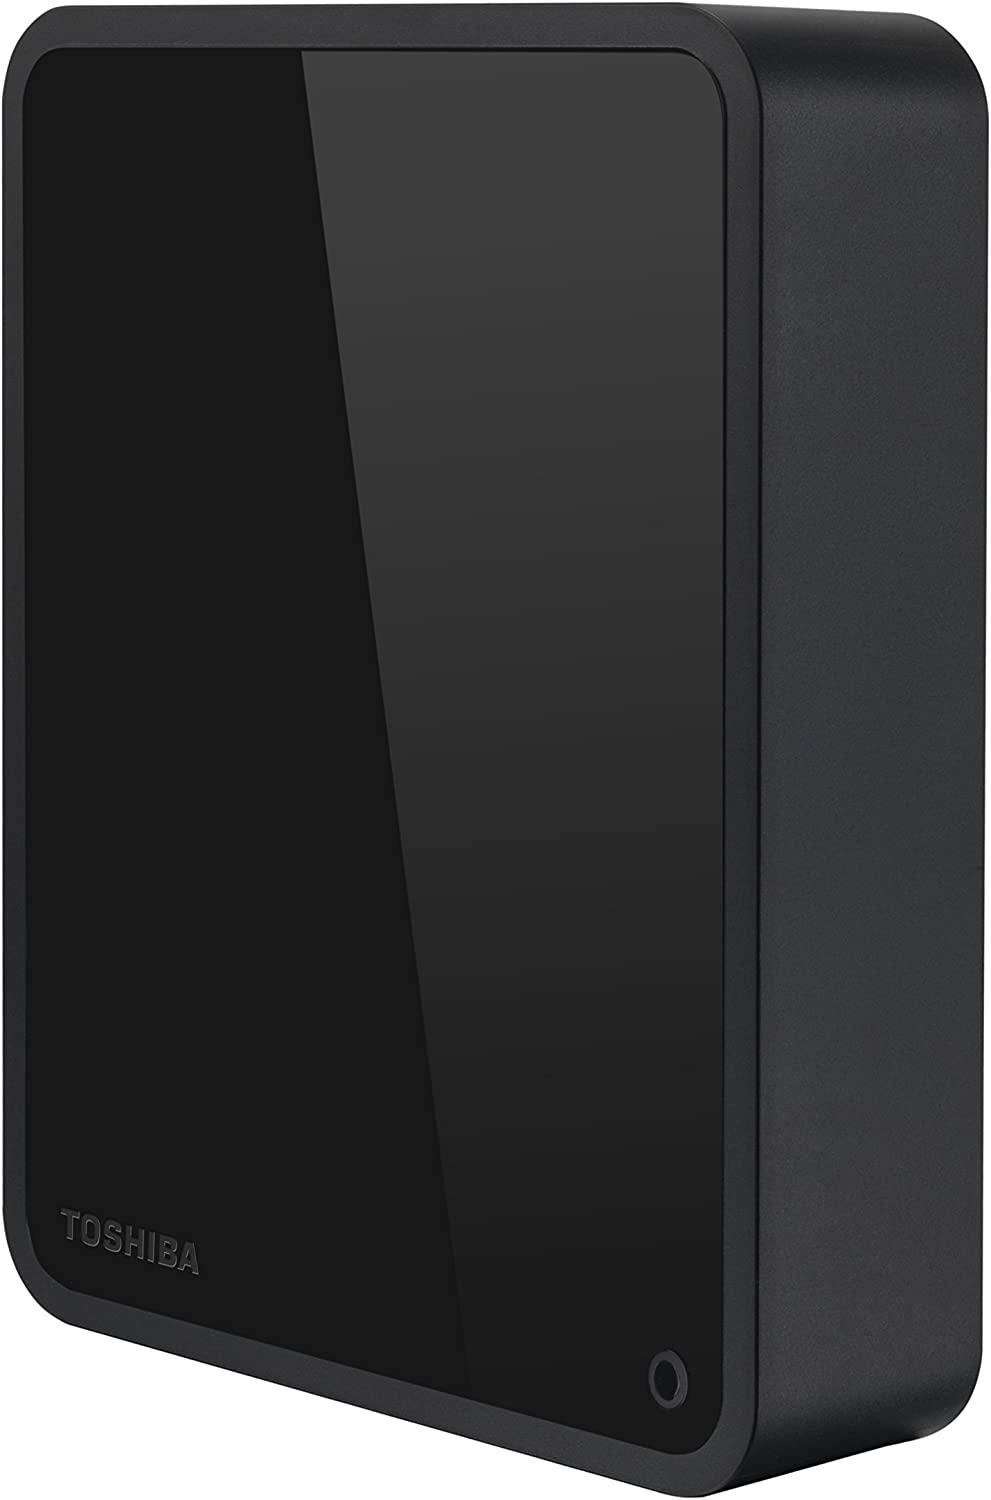 Toshiba 5TB Canvio for Desktop 7200 RPM External Hard Drive, USB 3.0 (HDWC350XK3JA)